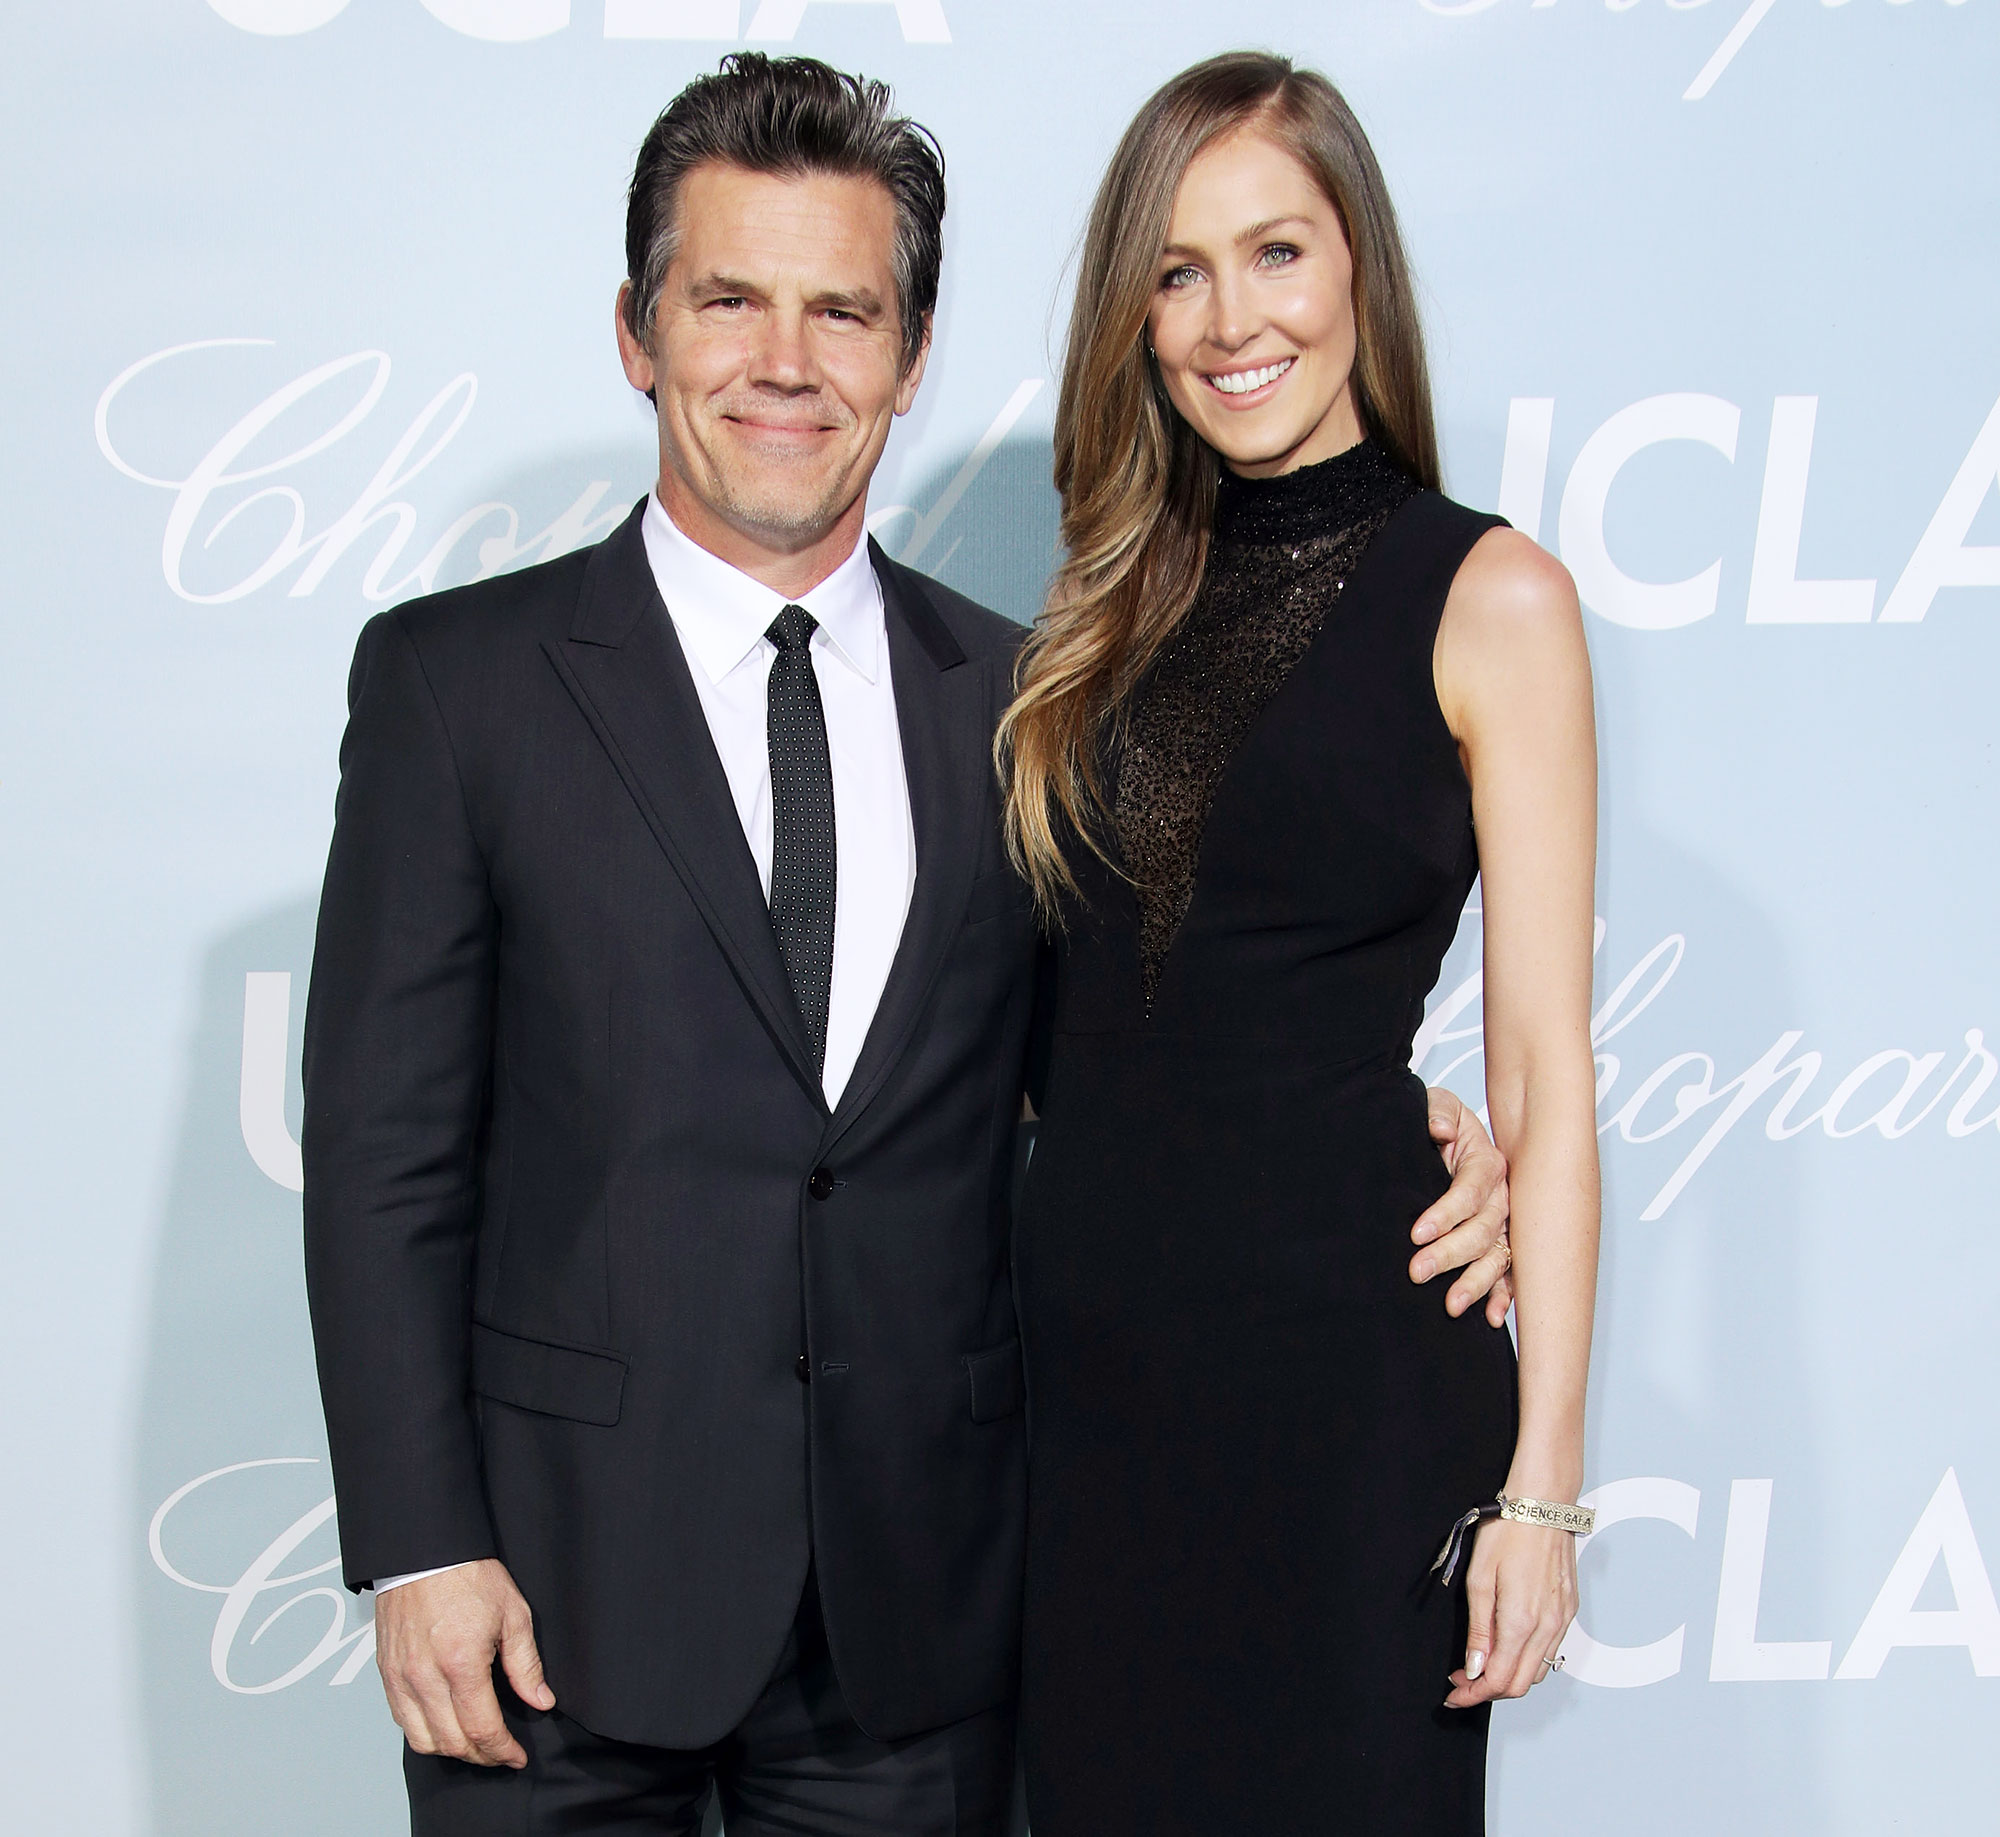 Josh Brolin and Kathryn Boyd attend the Hollywood for Science Gala Josh Brolin and Kathryn Boyd Welcome Their Second Child Together